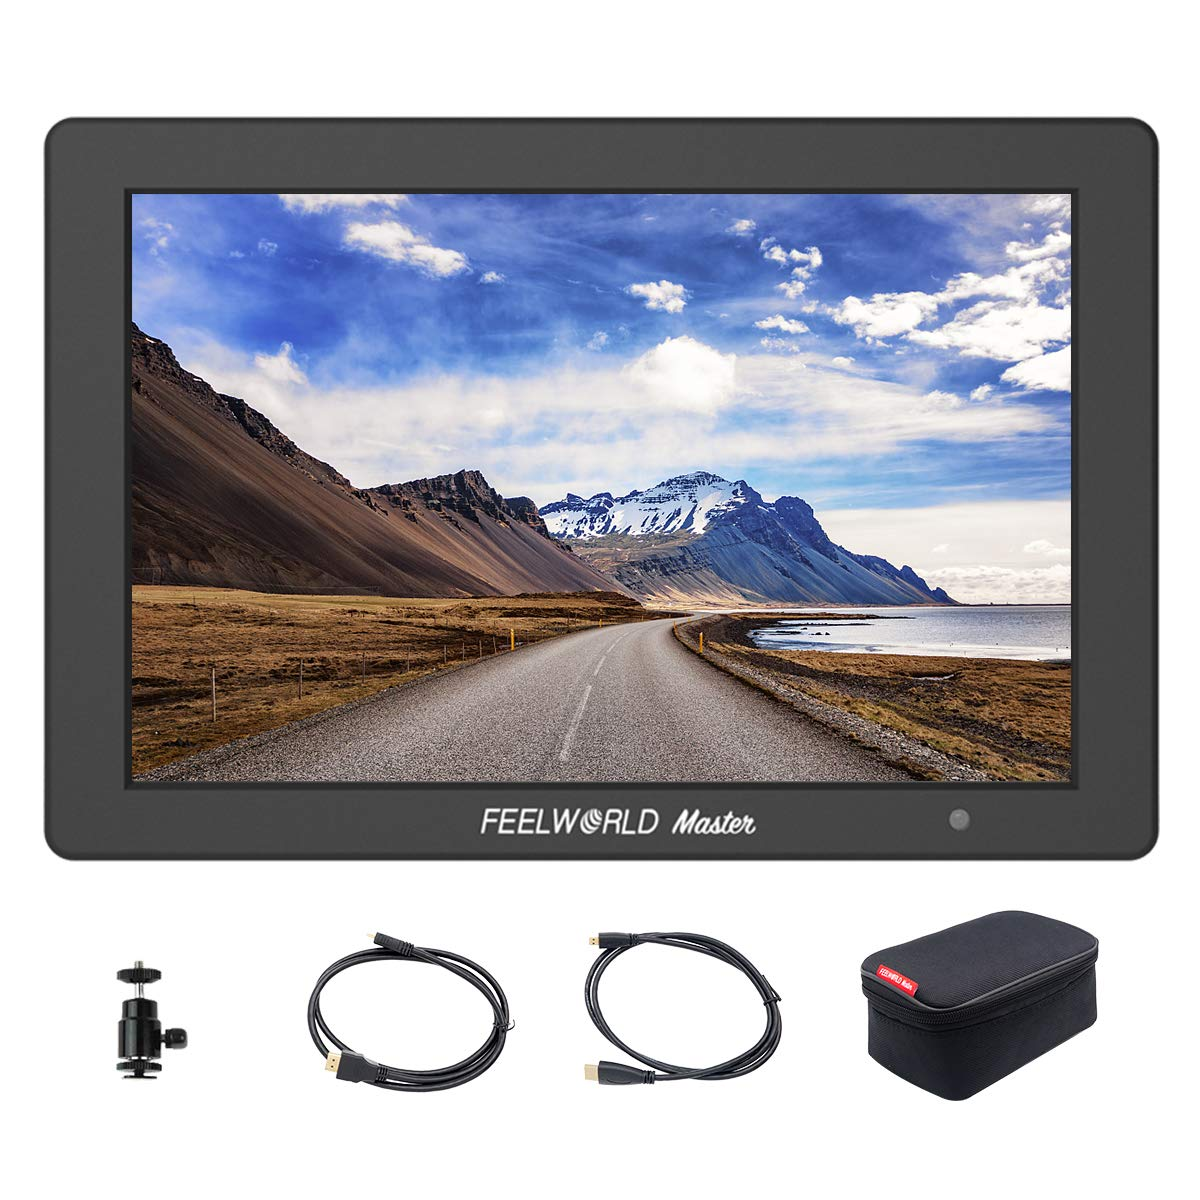 Feelworld Master MA6, 5.7 inch on Camera Field Monitor, Full HD 1920x1080 IPS, for Gimbal/Stabilizer, 4K HDMI Input Output, Aluminum Frame.